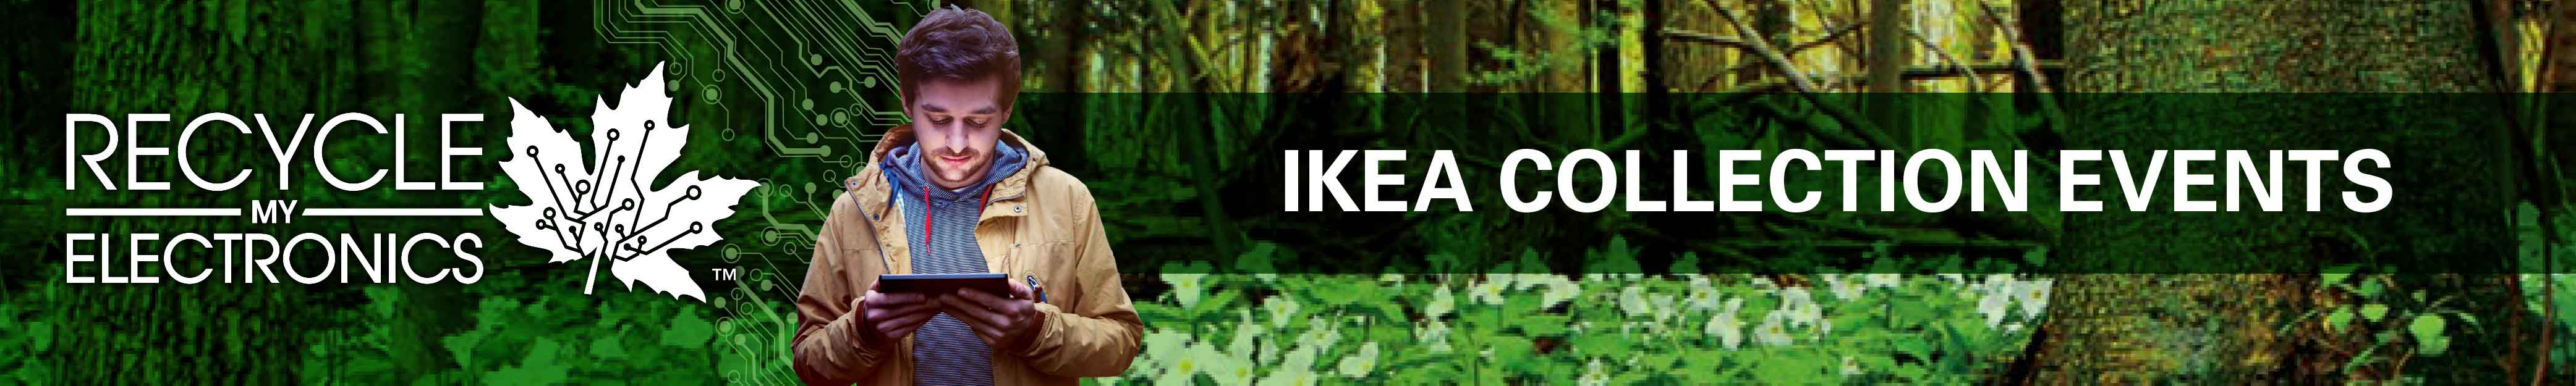 EPRA_ON_IKEA_Collection_Events_Banner